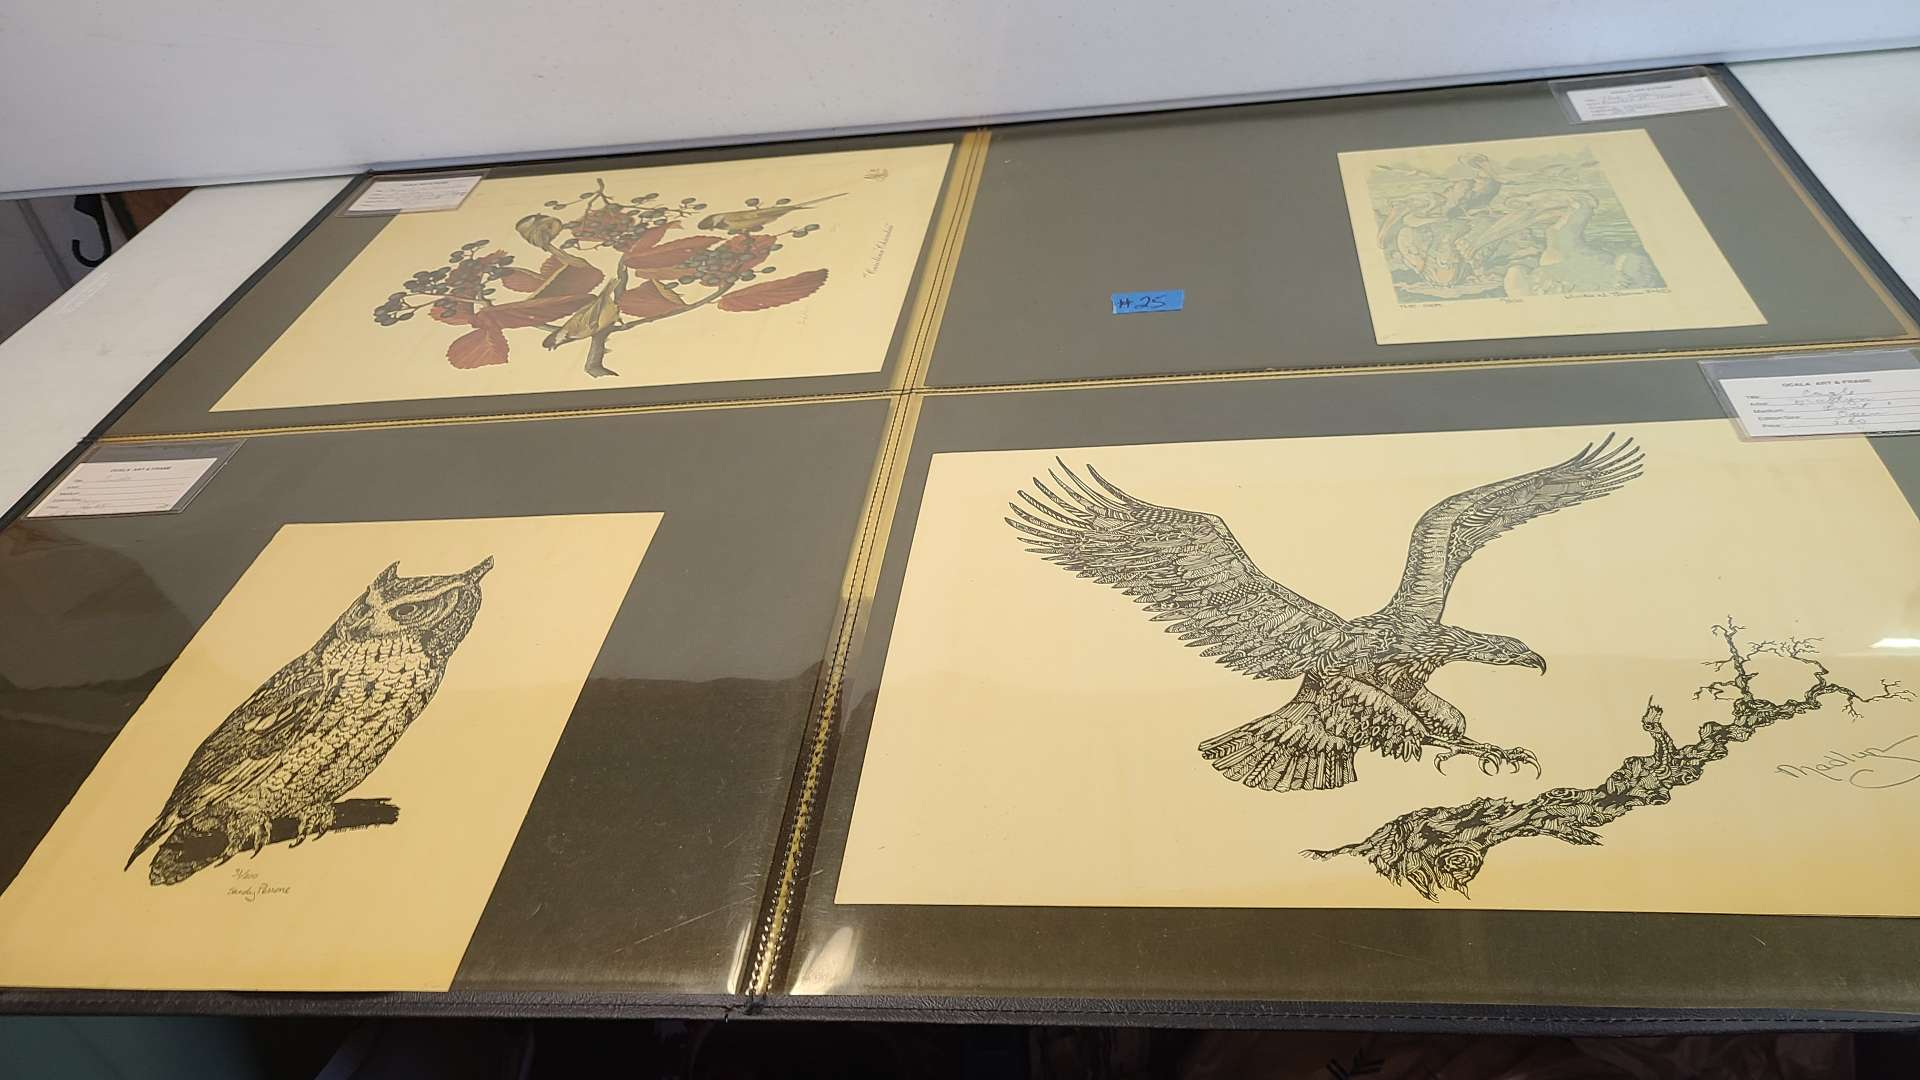 Lot # 25 Lot of 8 Small Lithographs-Some Signed & Numbered-Some Just Signed